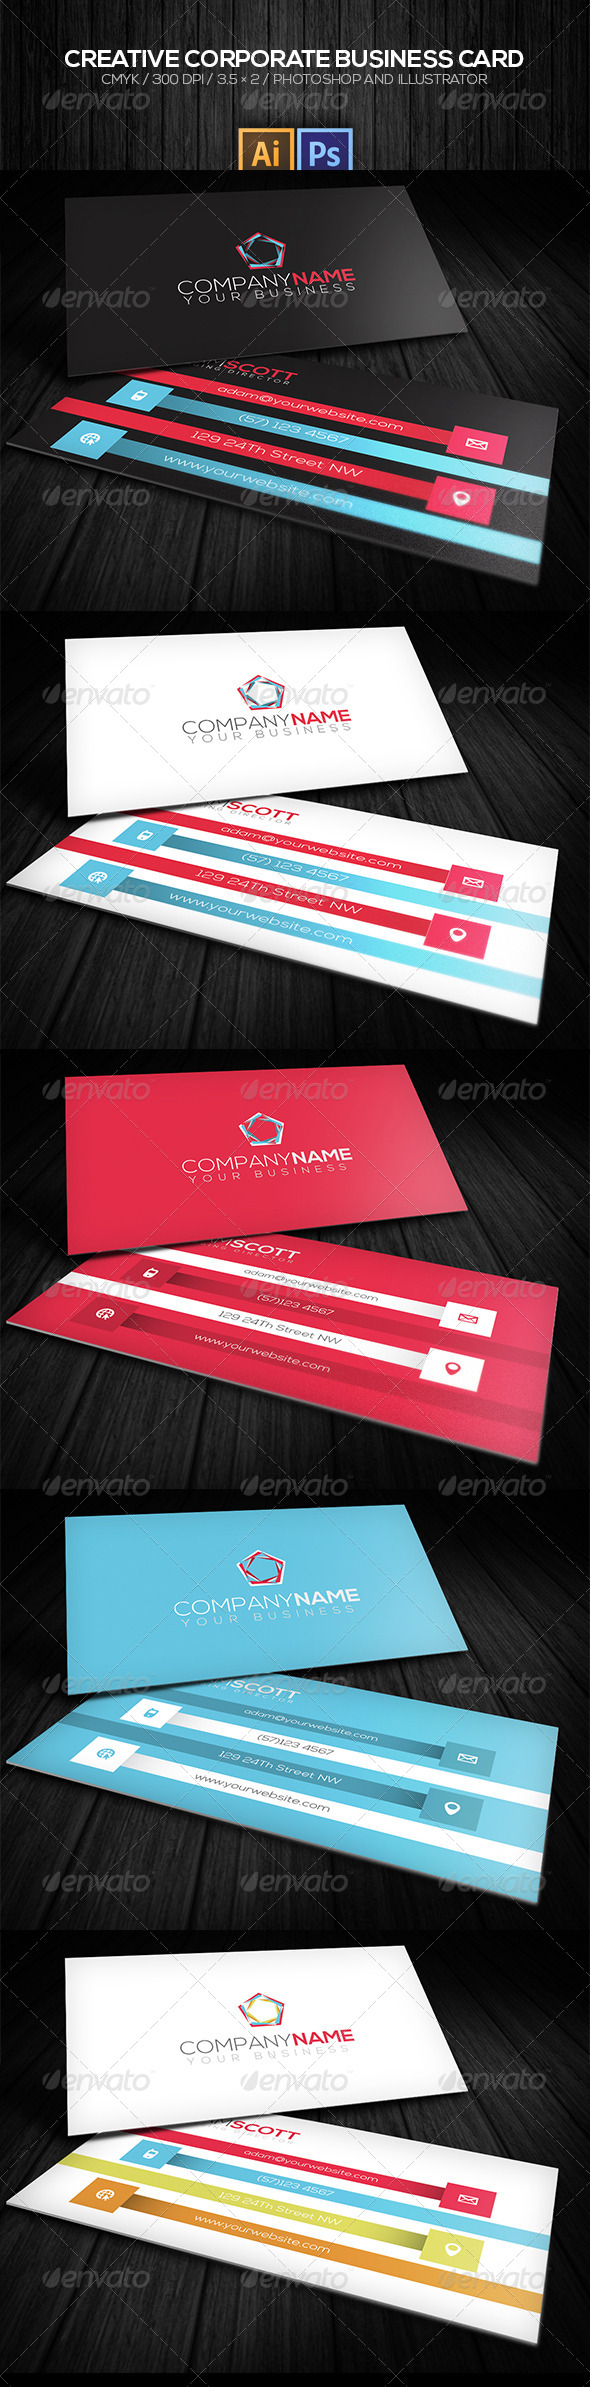 GraphicRiver Creative Corporate Business Card 8181154